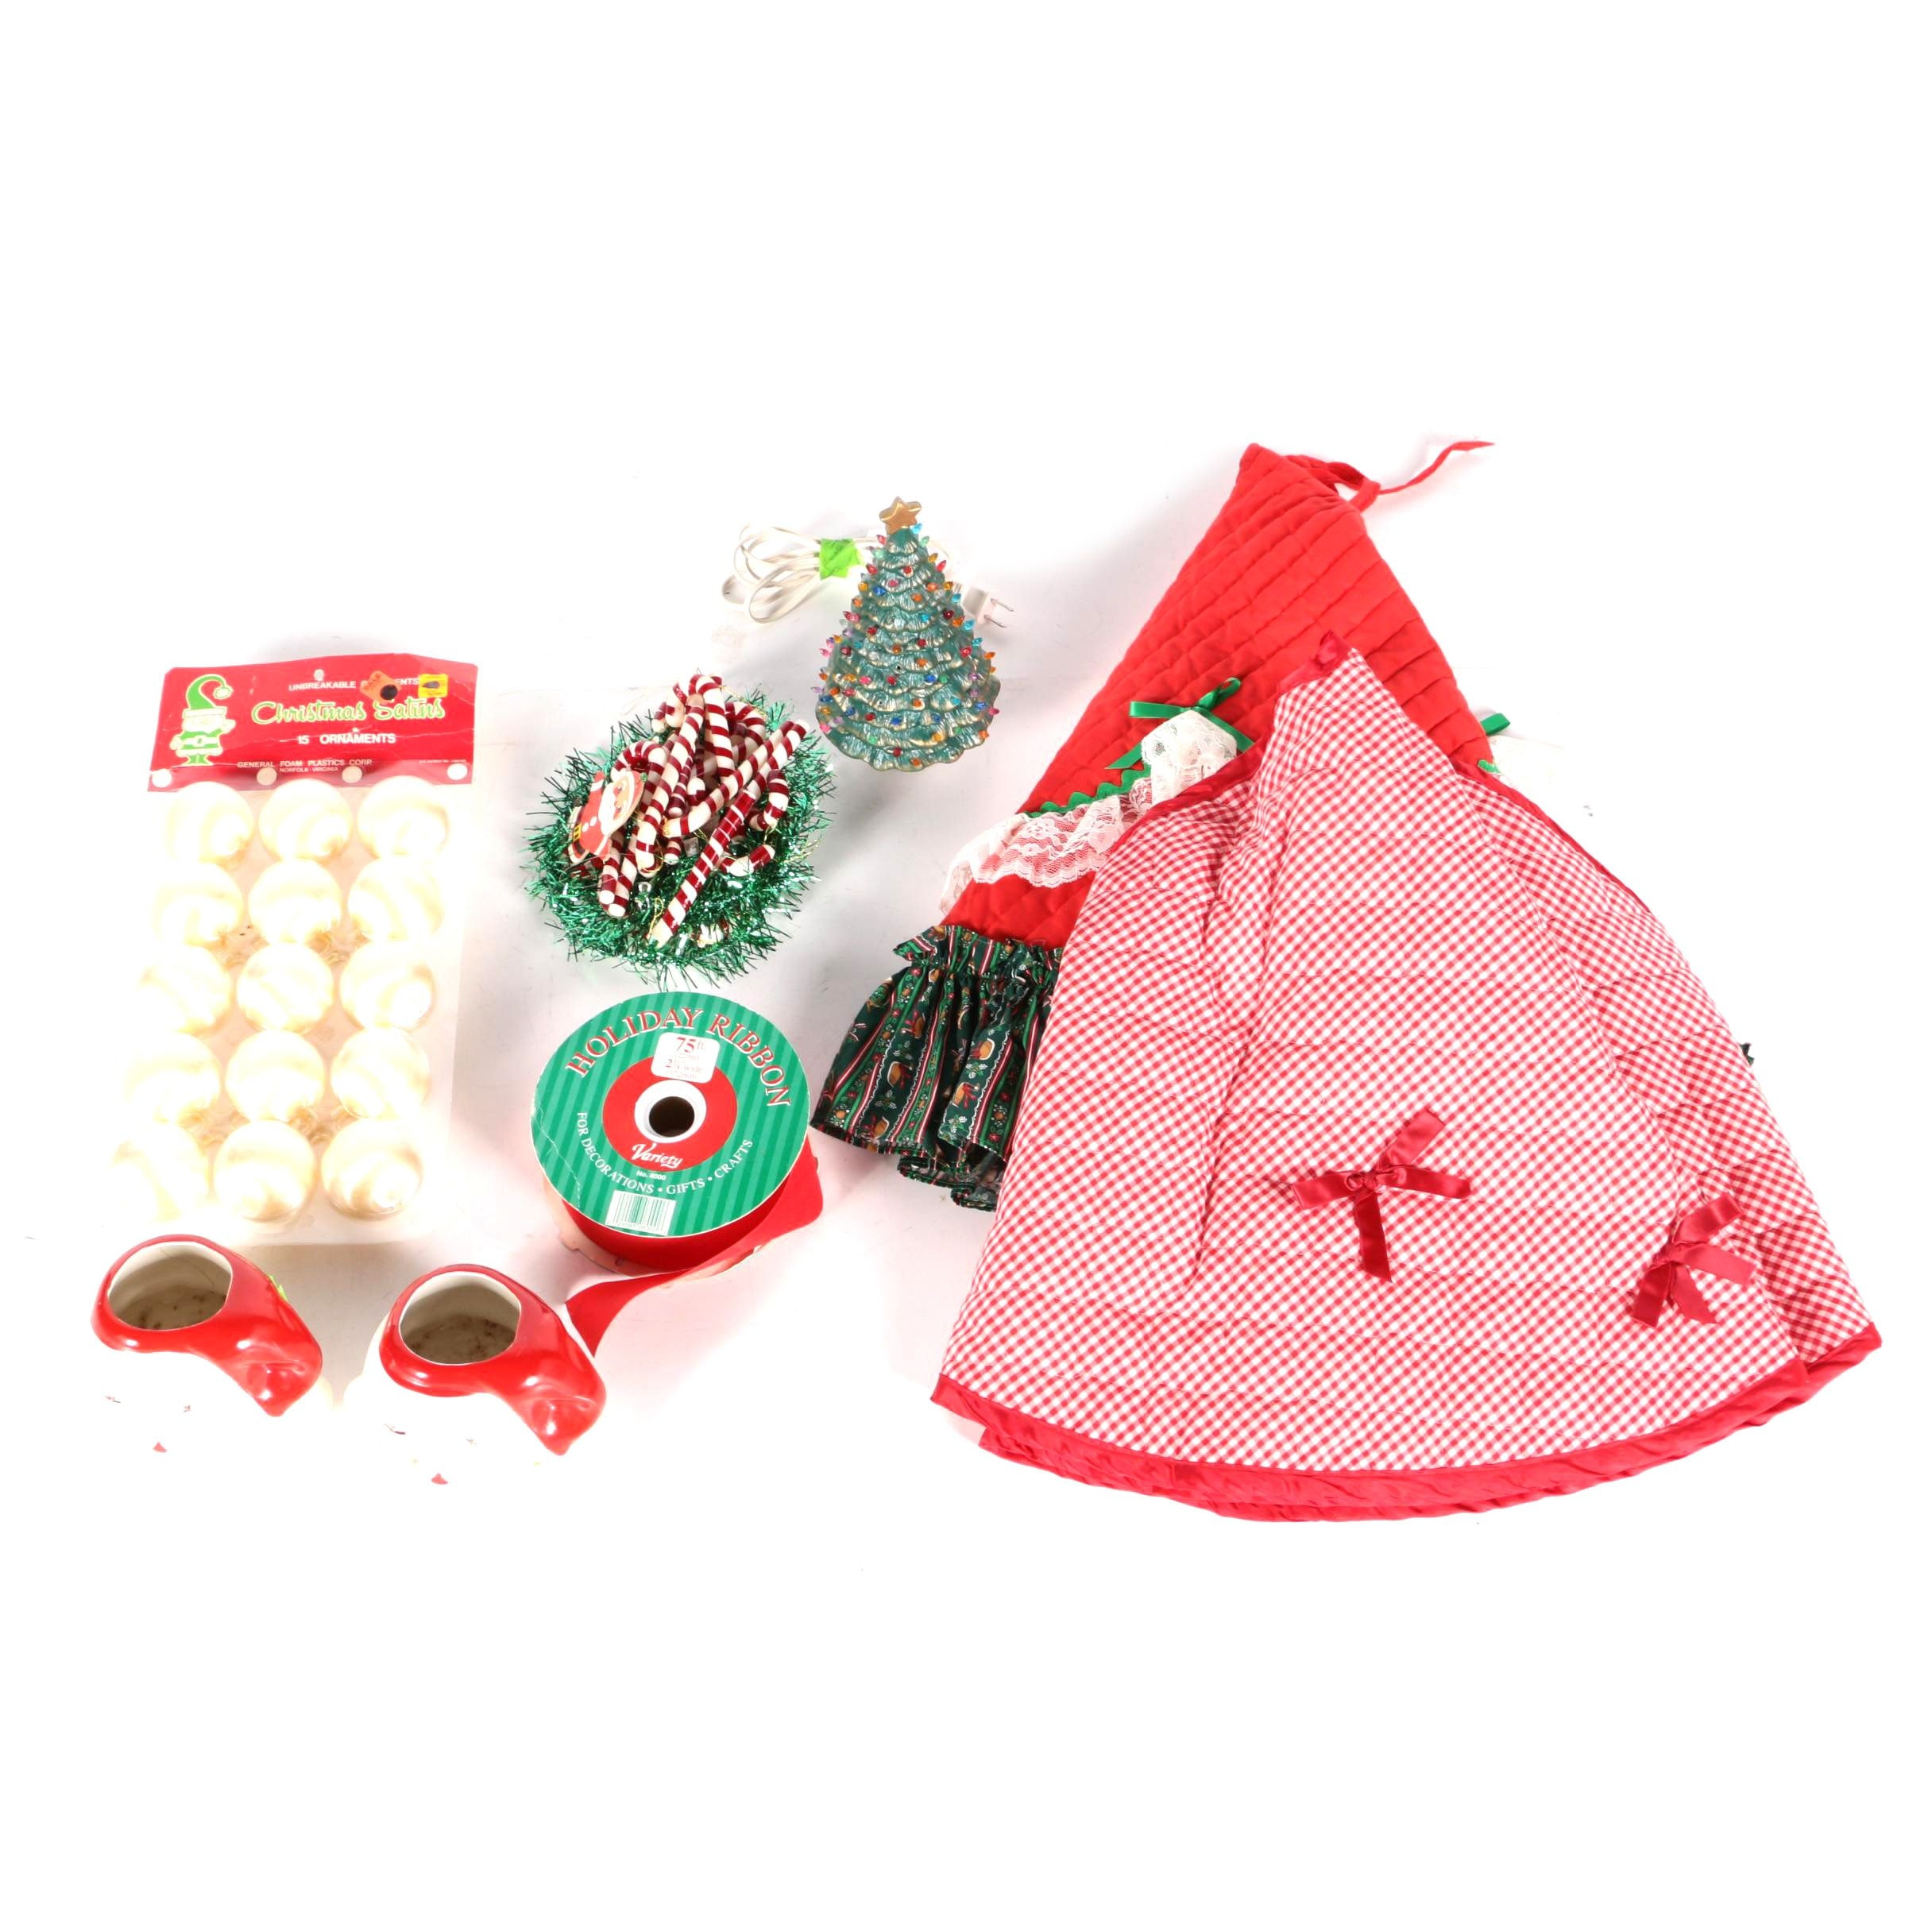 Holiday Decorations, Mugs, Ribbons and Tree Skirts